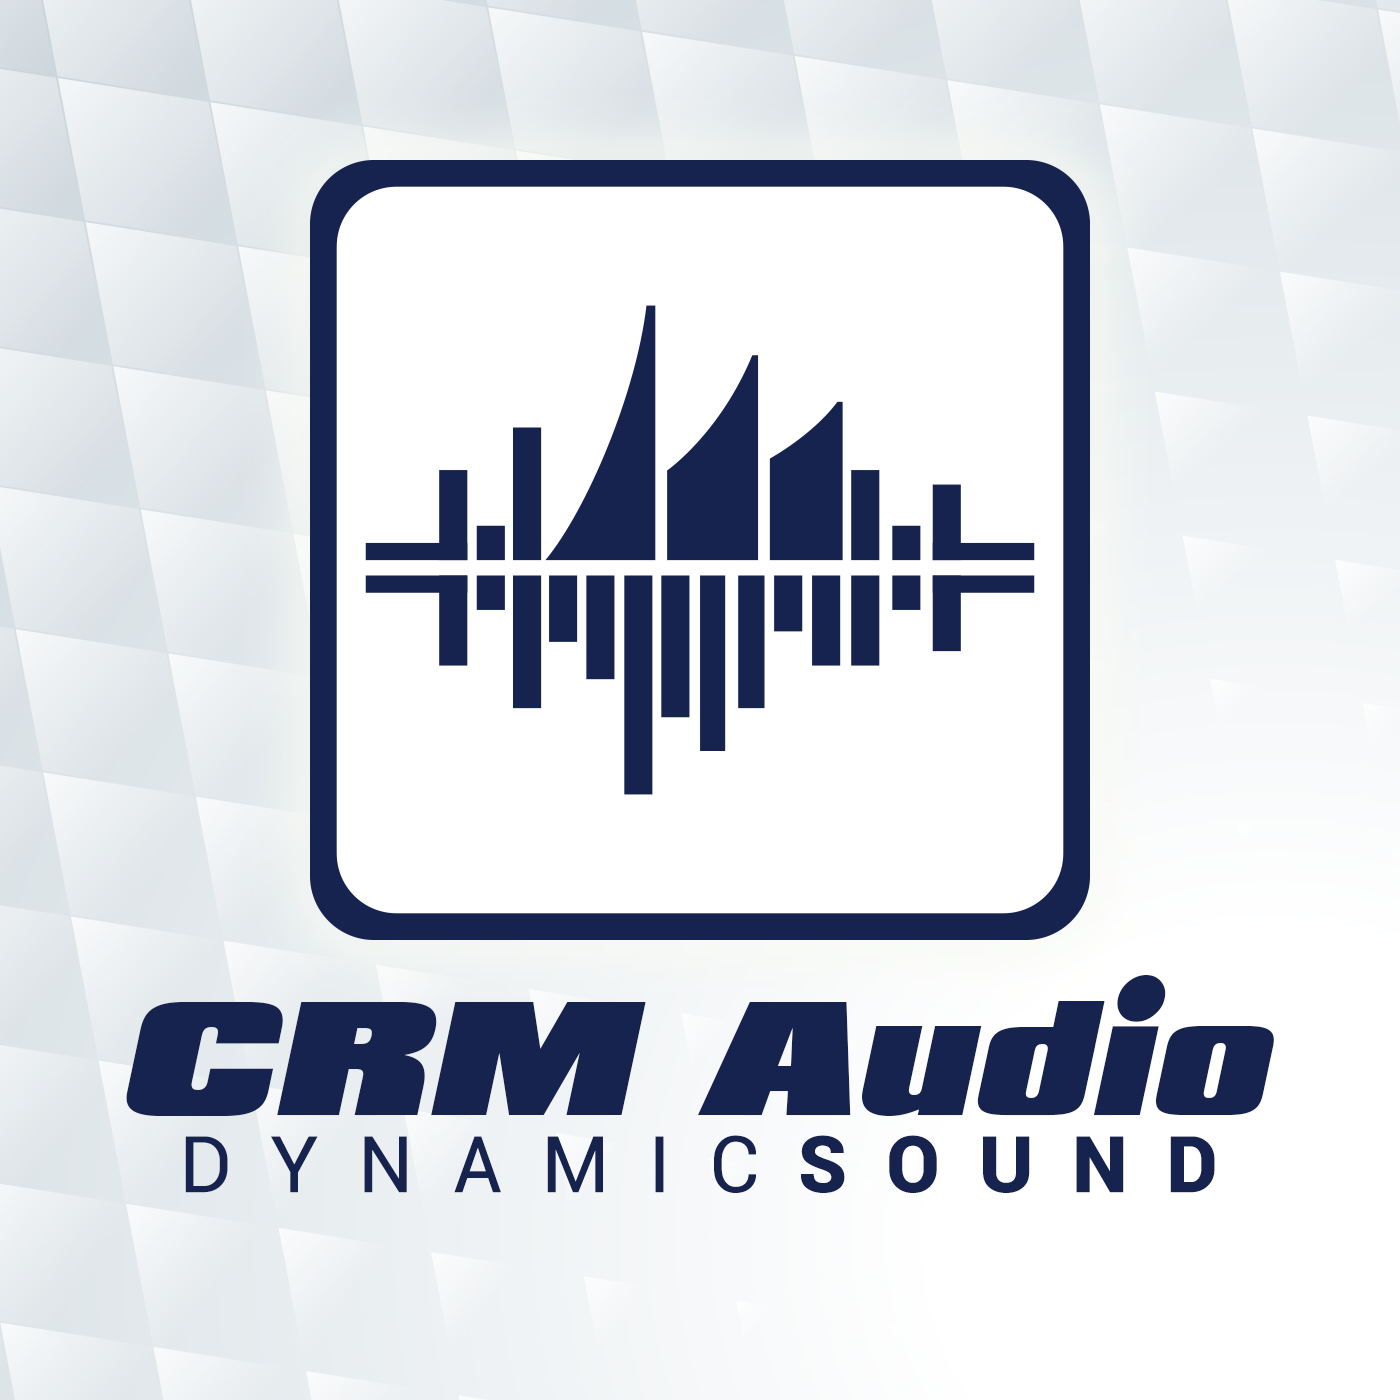 Artwork for CRM Audio 79: Get on board the #GermanTrain